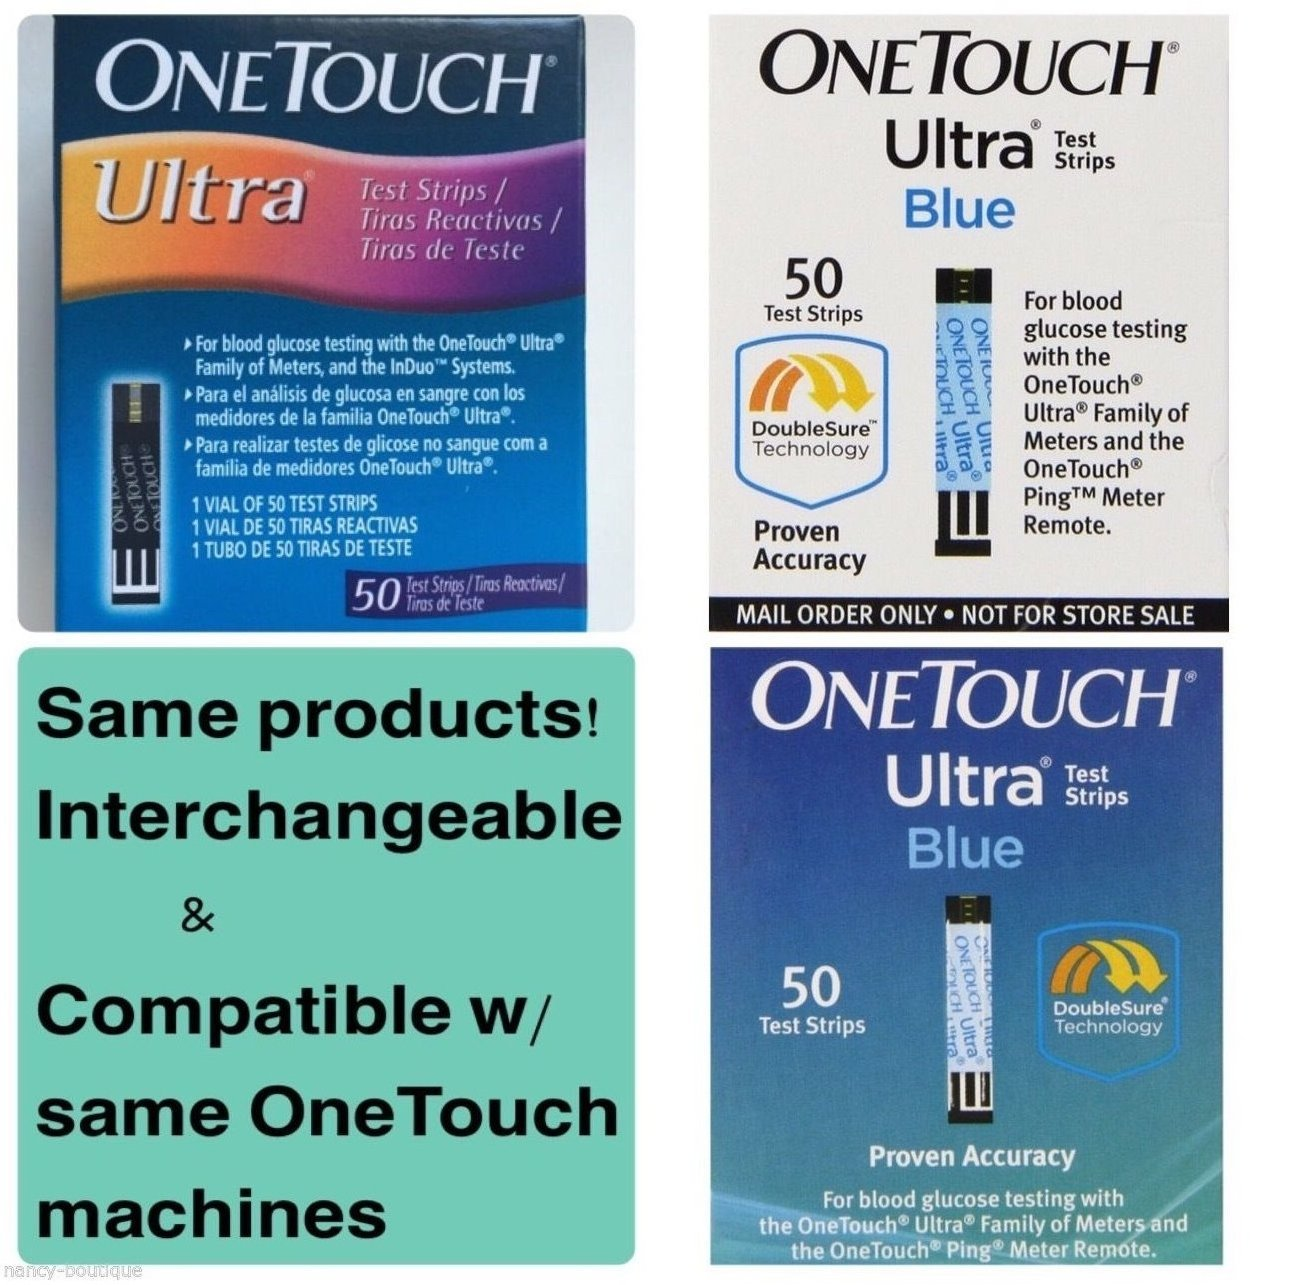 One Touch Ultra 3 Language English, Spanish and Portuguese Test Strips, 50 Count, 3 Pack